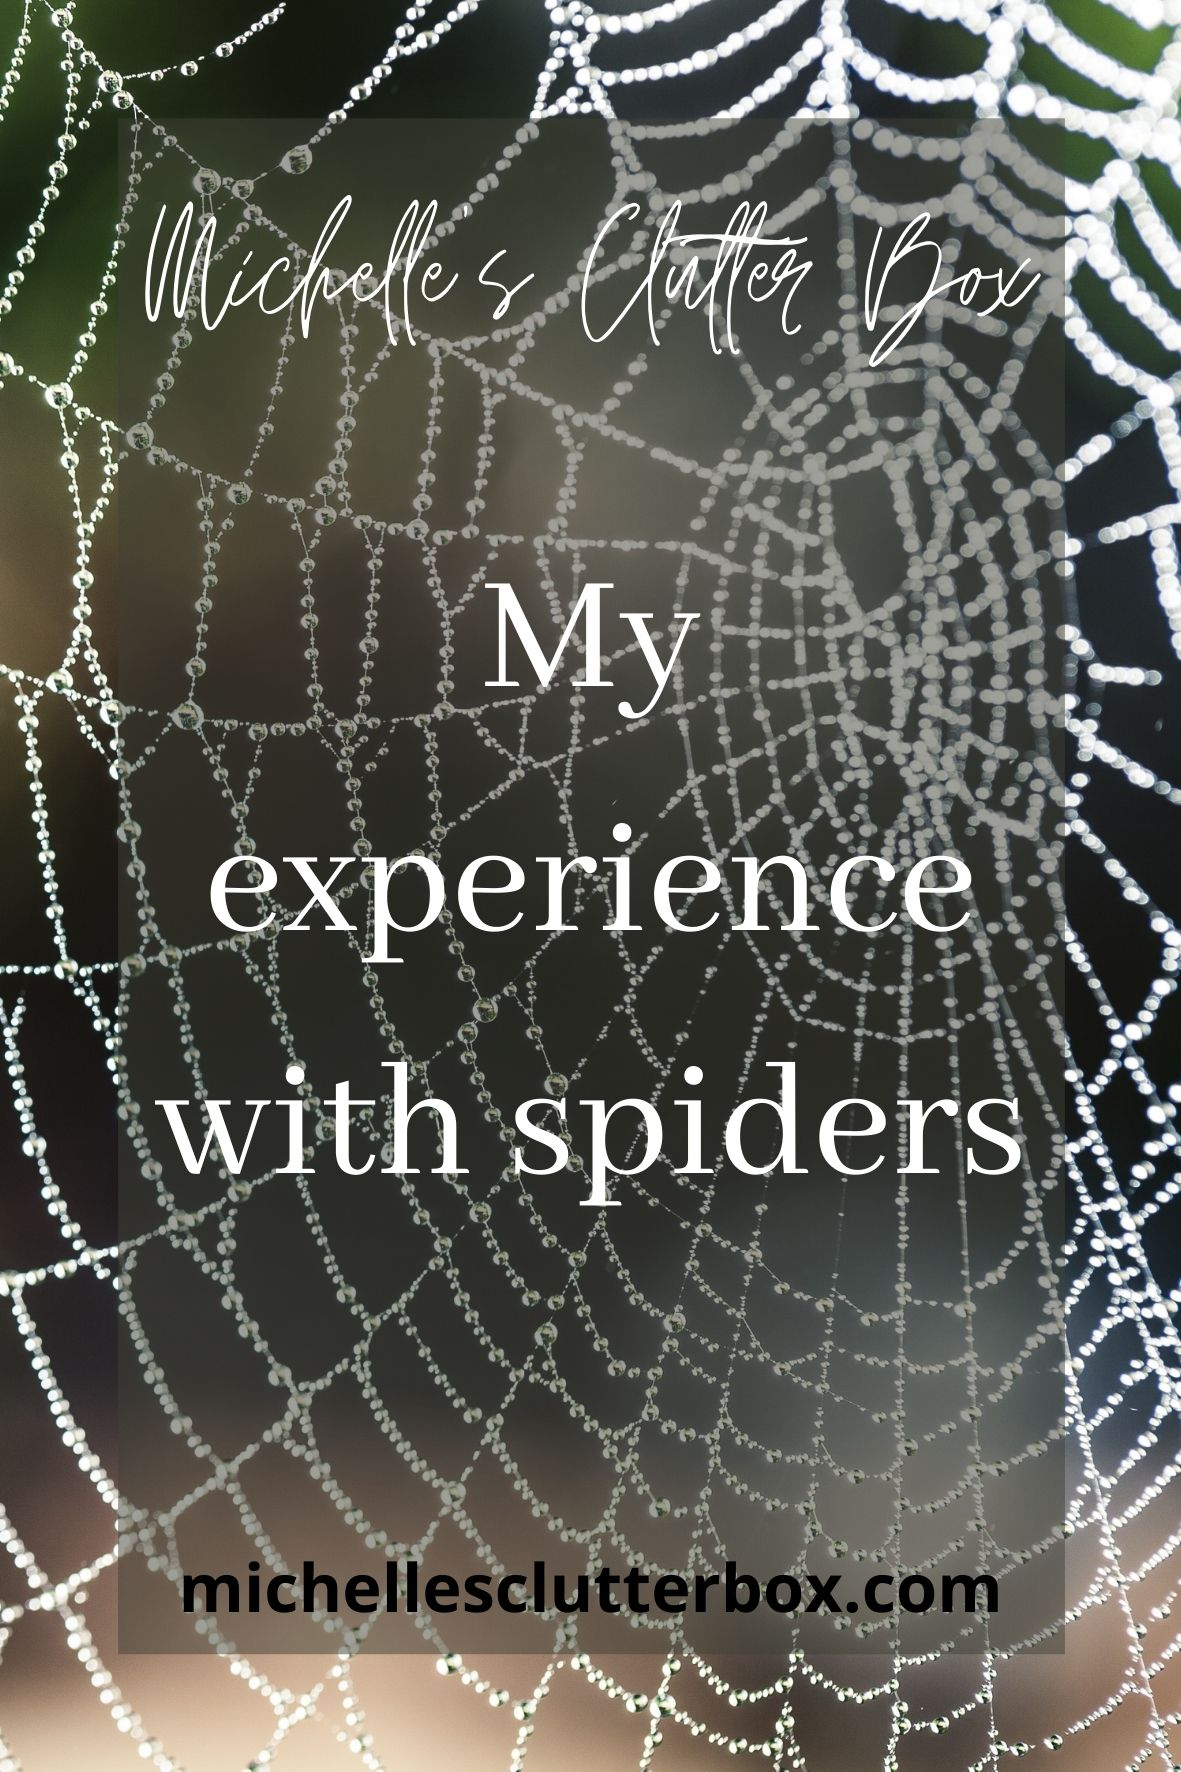 My experience with spiders